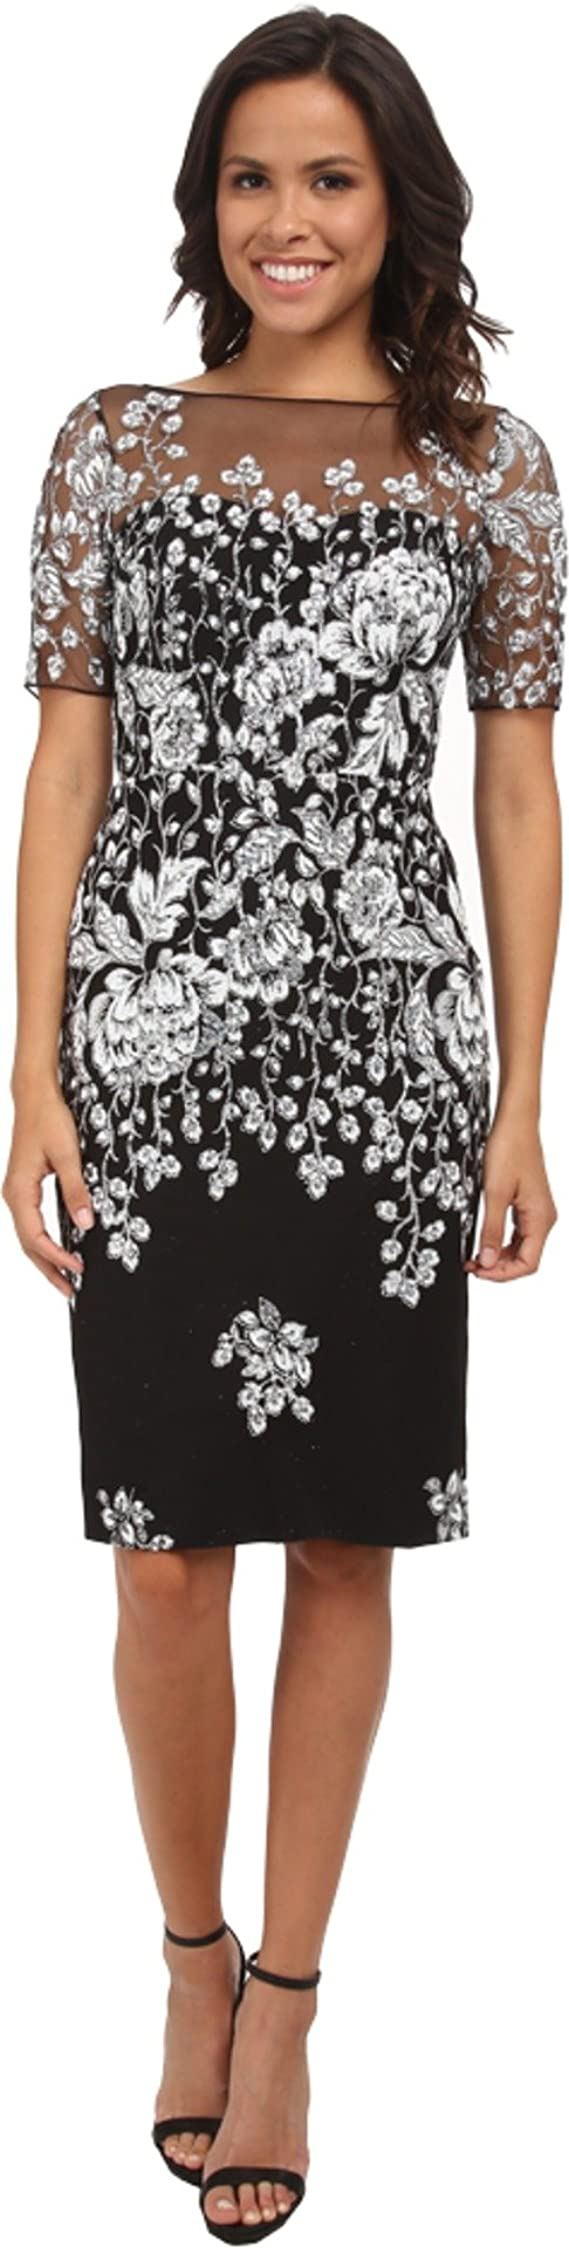 Badgley Mischka Women's Floral Cracked Ice On Tulle Cocktail